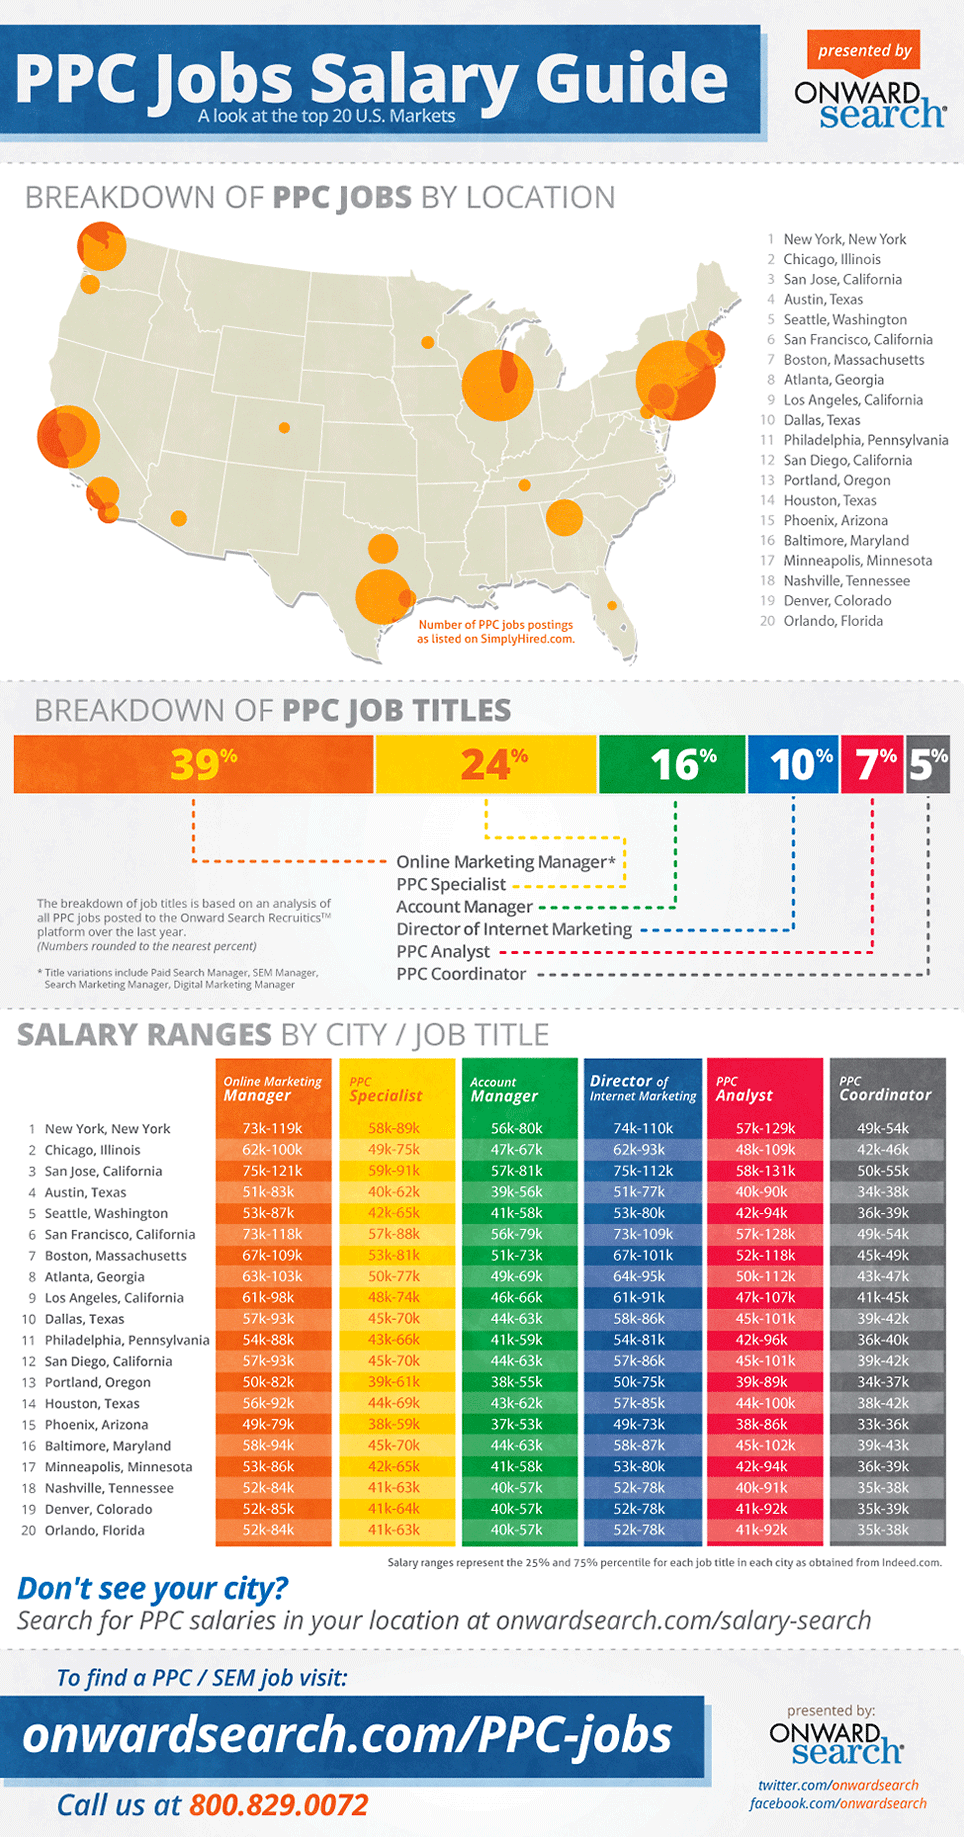 PPC Jobs Salary Guide PPC Jobs Salary Guide [Infographic]